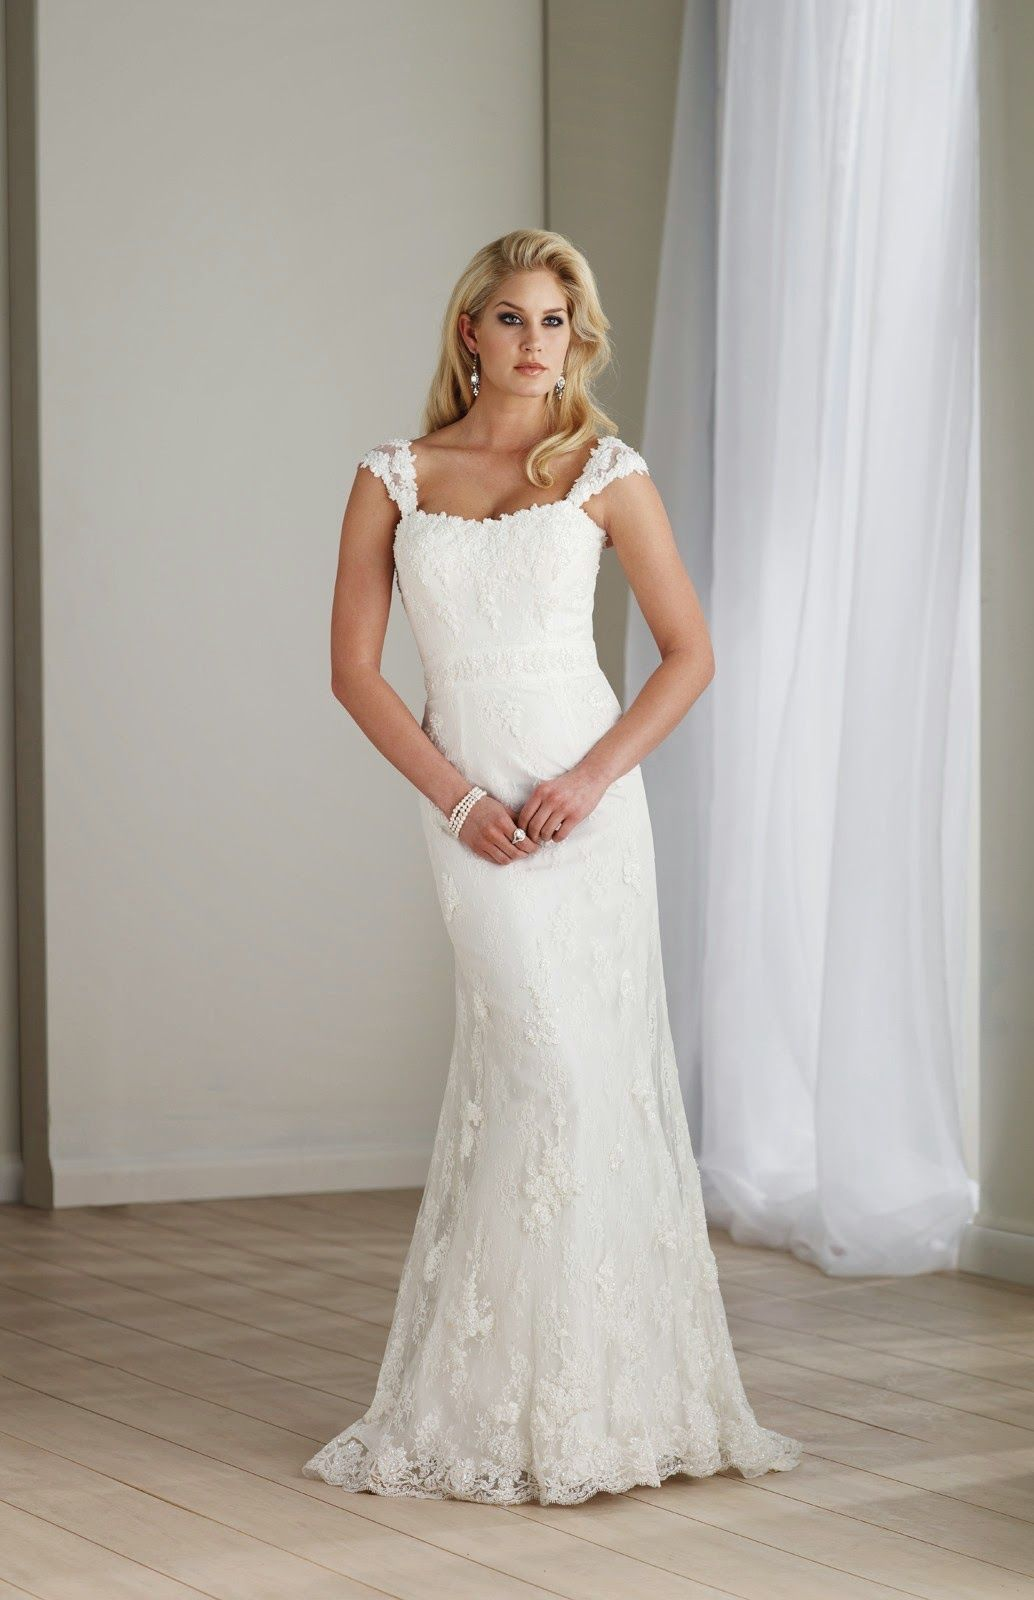 Informal Wedding Dresses For Older Brides.Informal Wedding Dresses For Older Brides Wedding Dresses